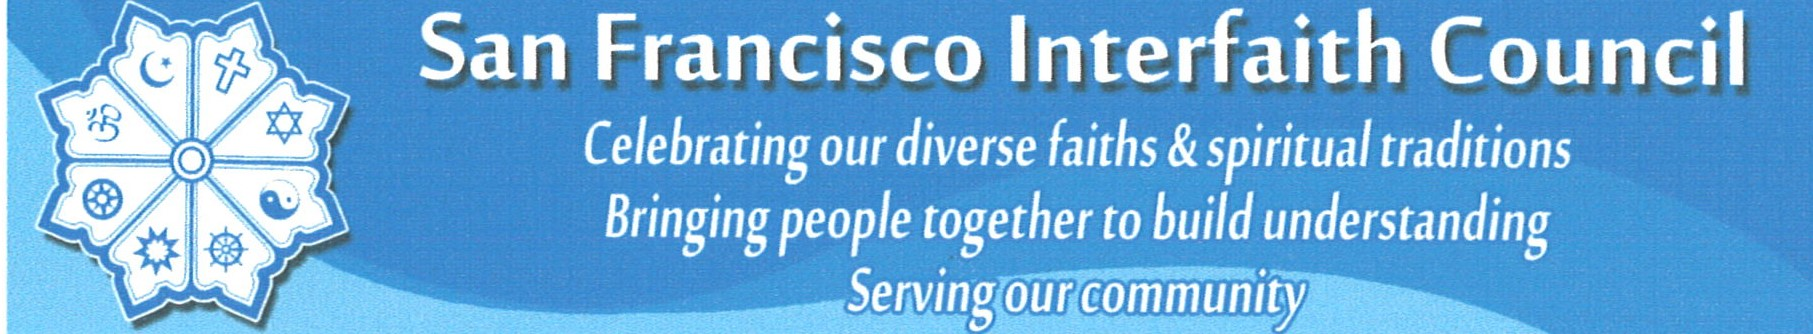 SF Interfaith Council